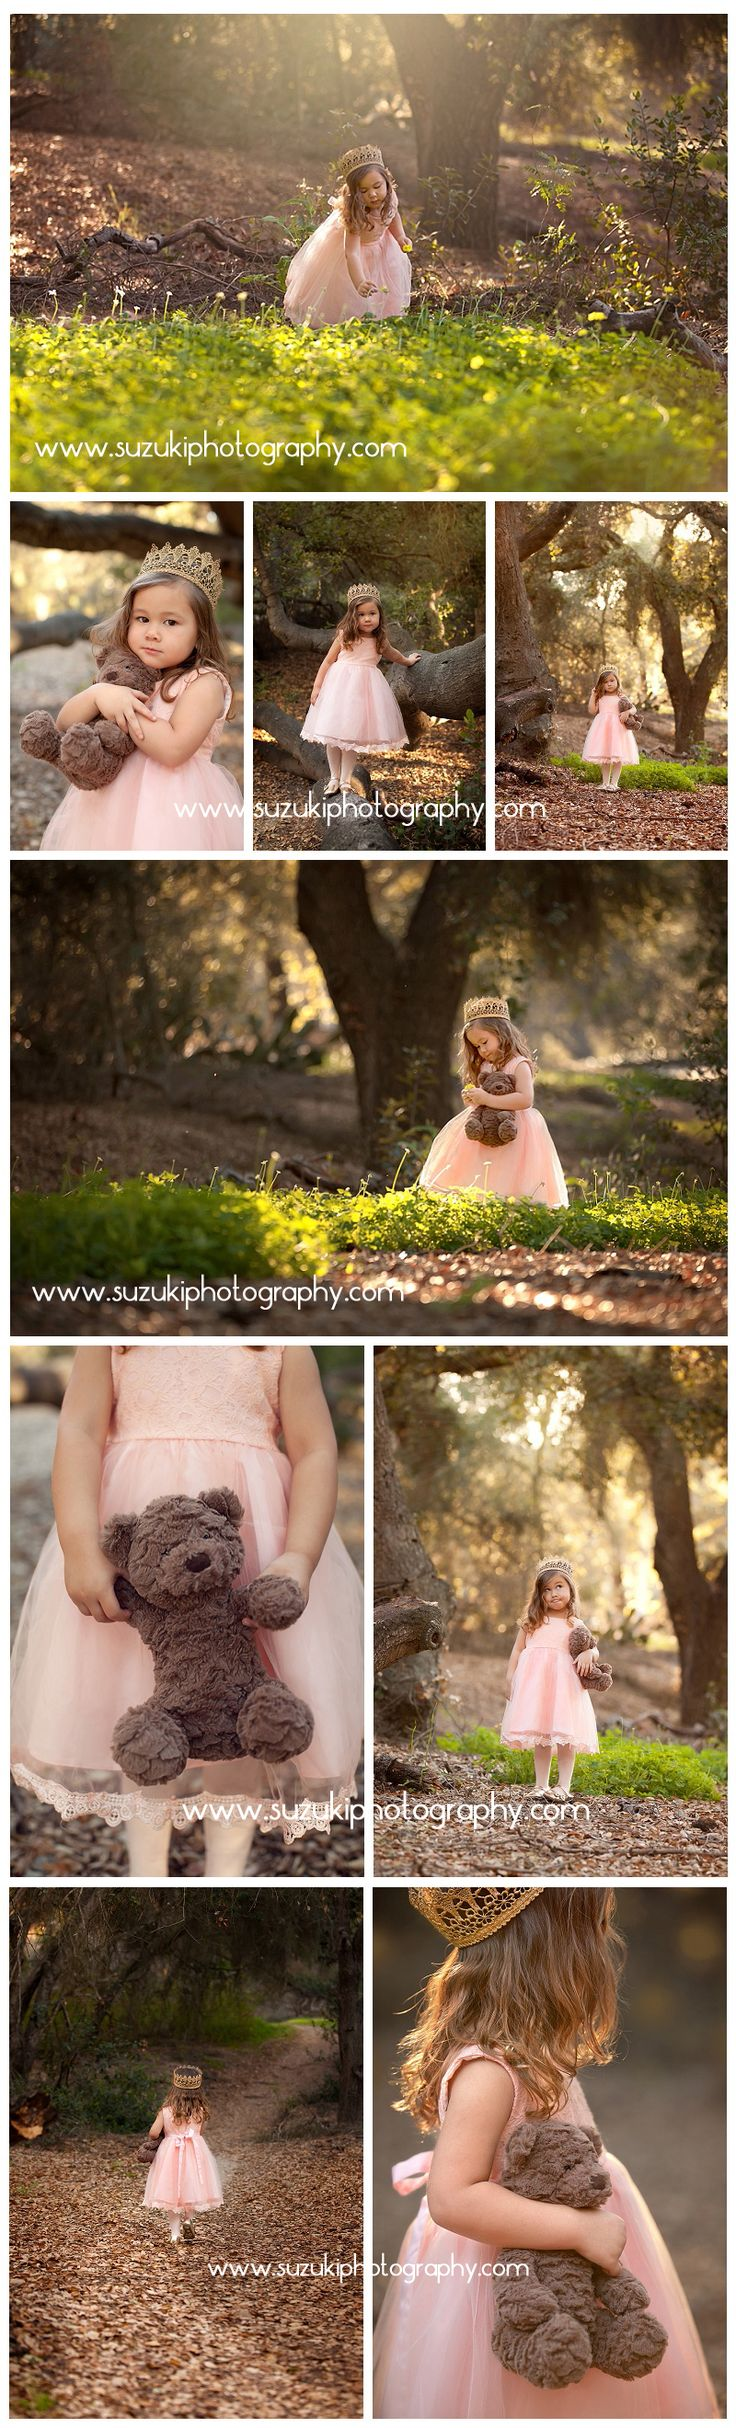 Princess in the forest photo shoot. There is something magical about a little girl in a princess dress with her favorite bear. Suzuki Photography